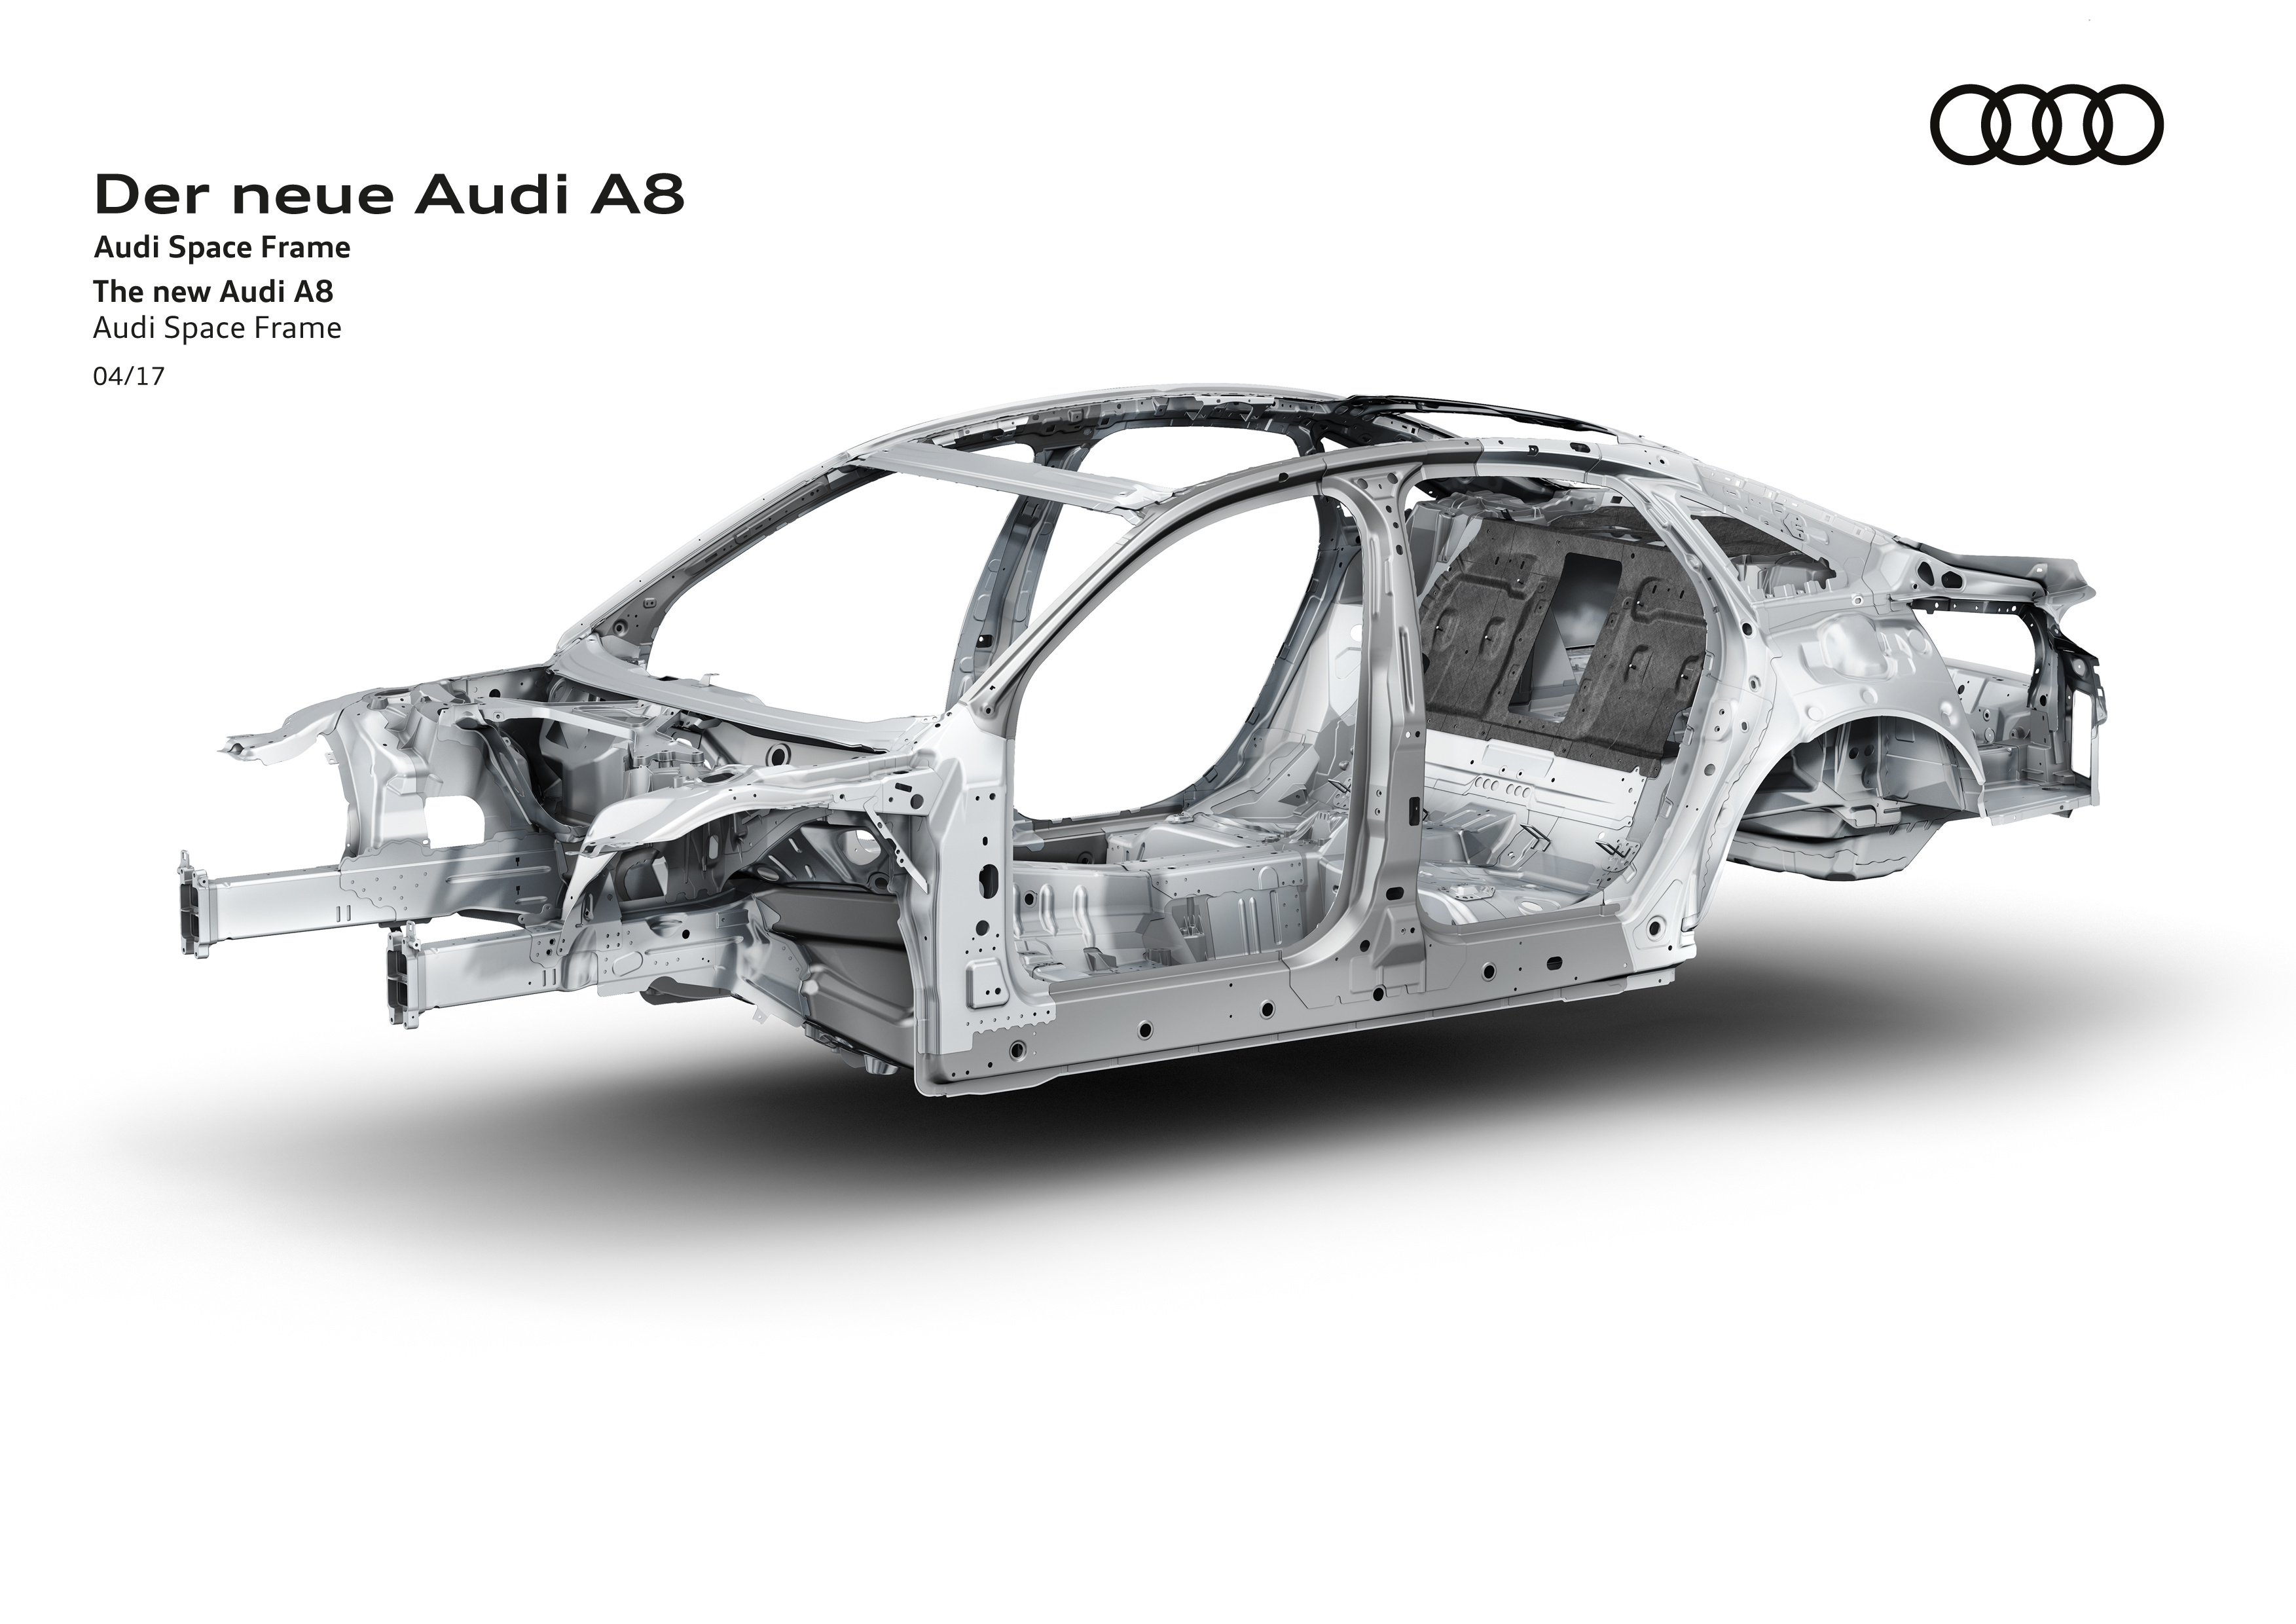 Upcoming Audi A8 uses UHSS, aluminum, carbon-fiber, magnesium; joins ...